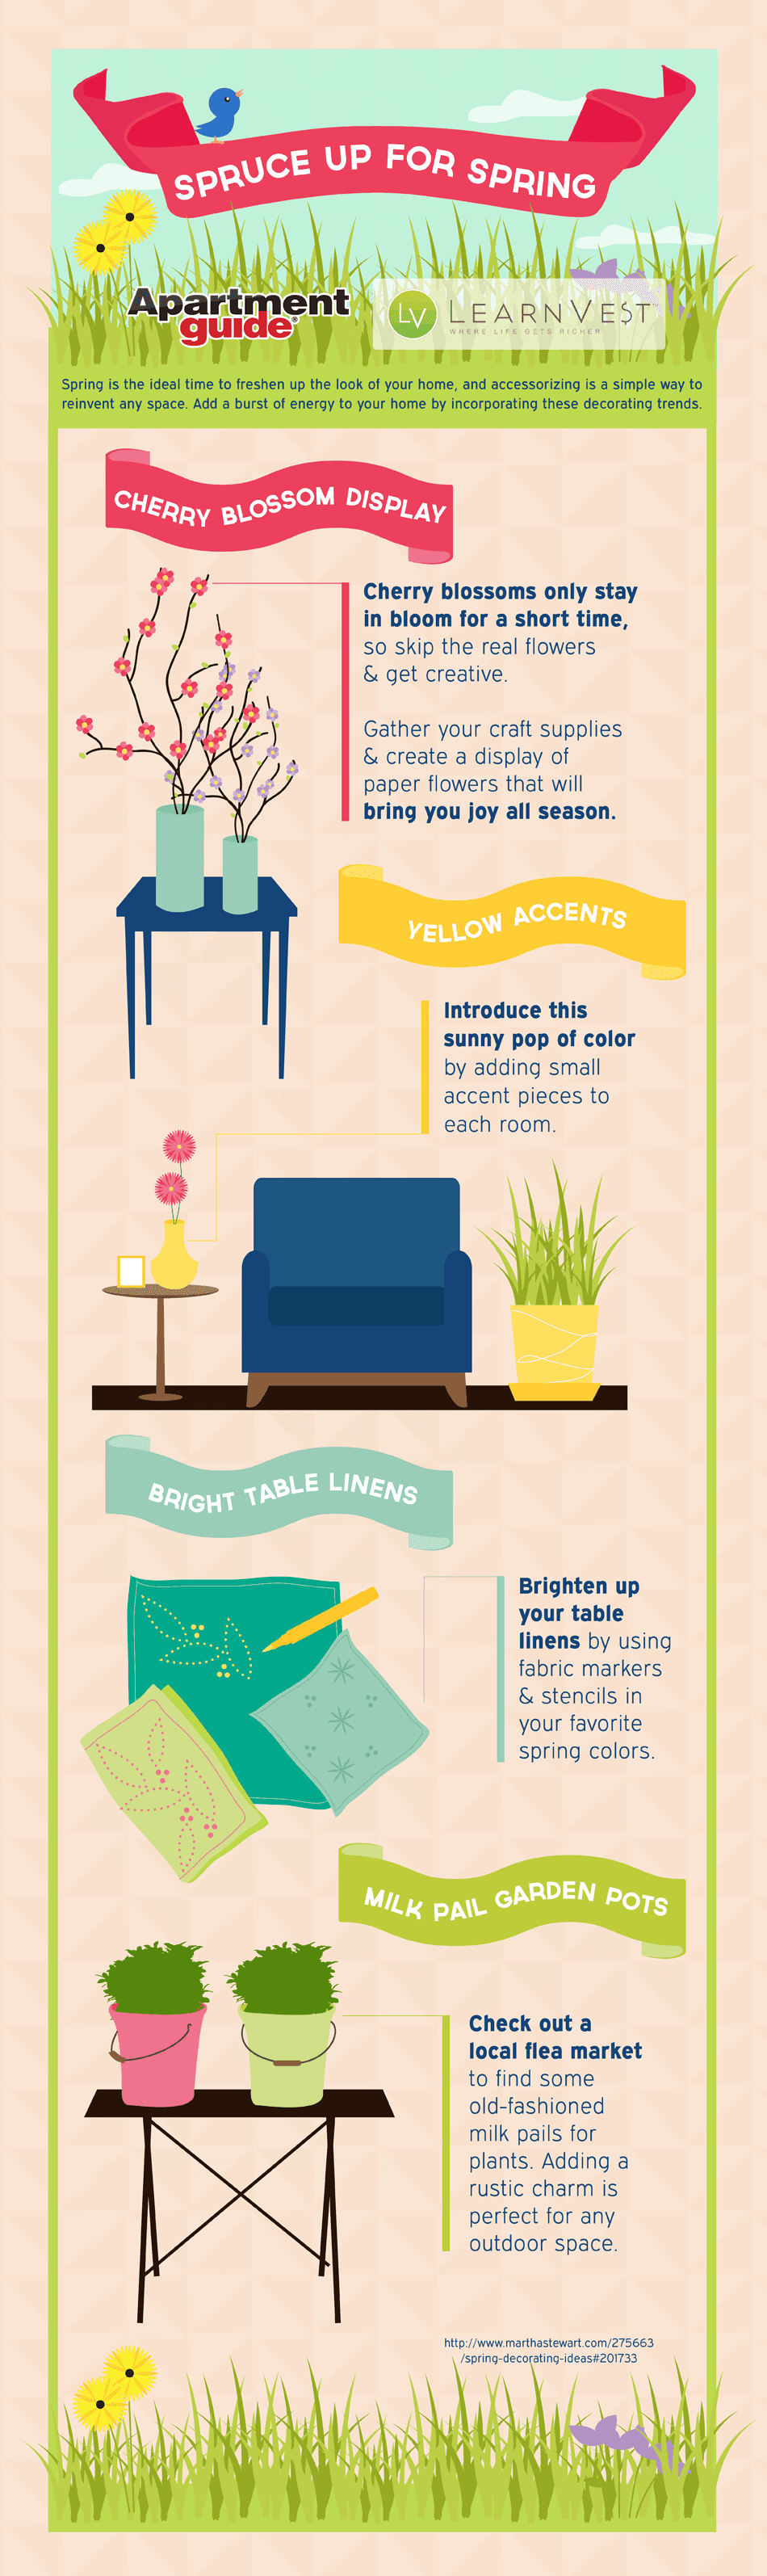 Spruce Up For Spring Freshen Your Home Infographic